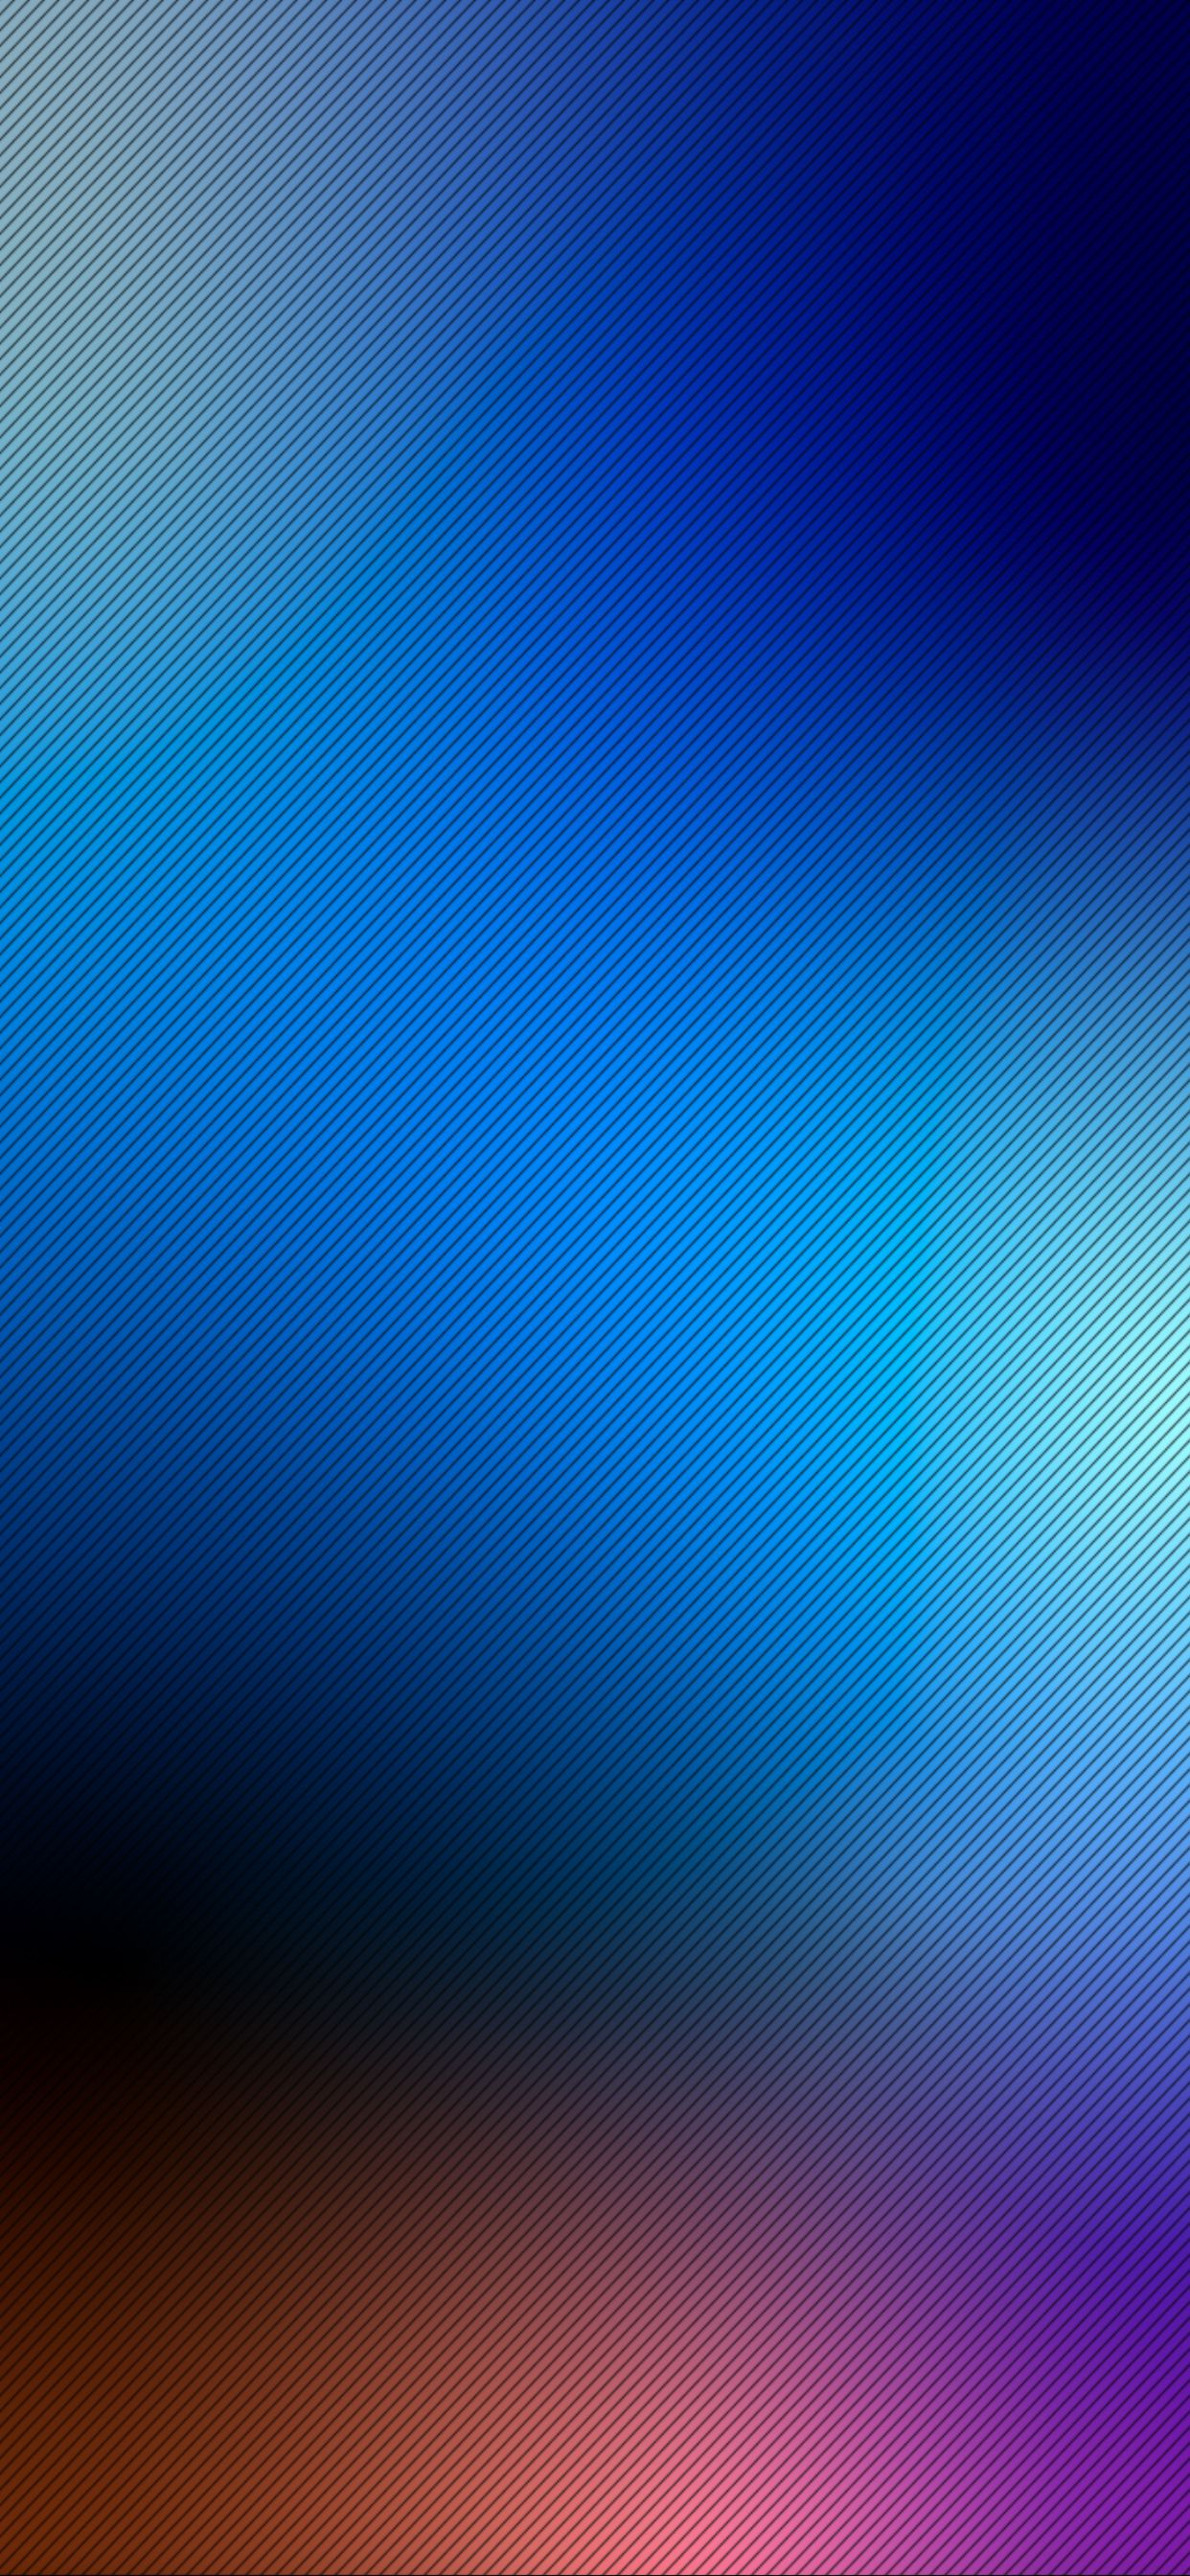 Gradient Grid by Hk3ToN on Twitter Iphone wallpaper Ombre 1242x2688